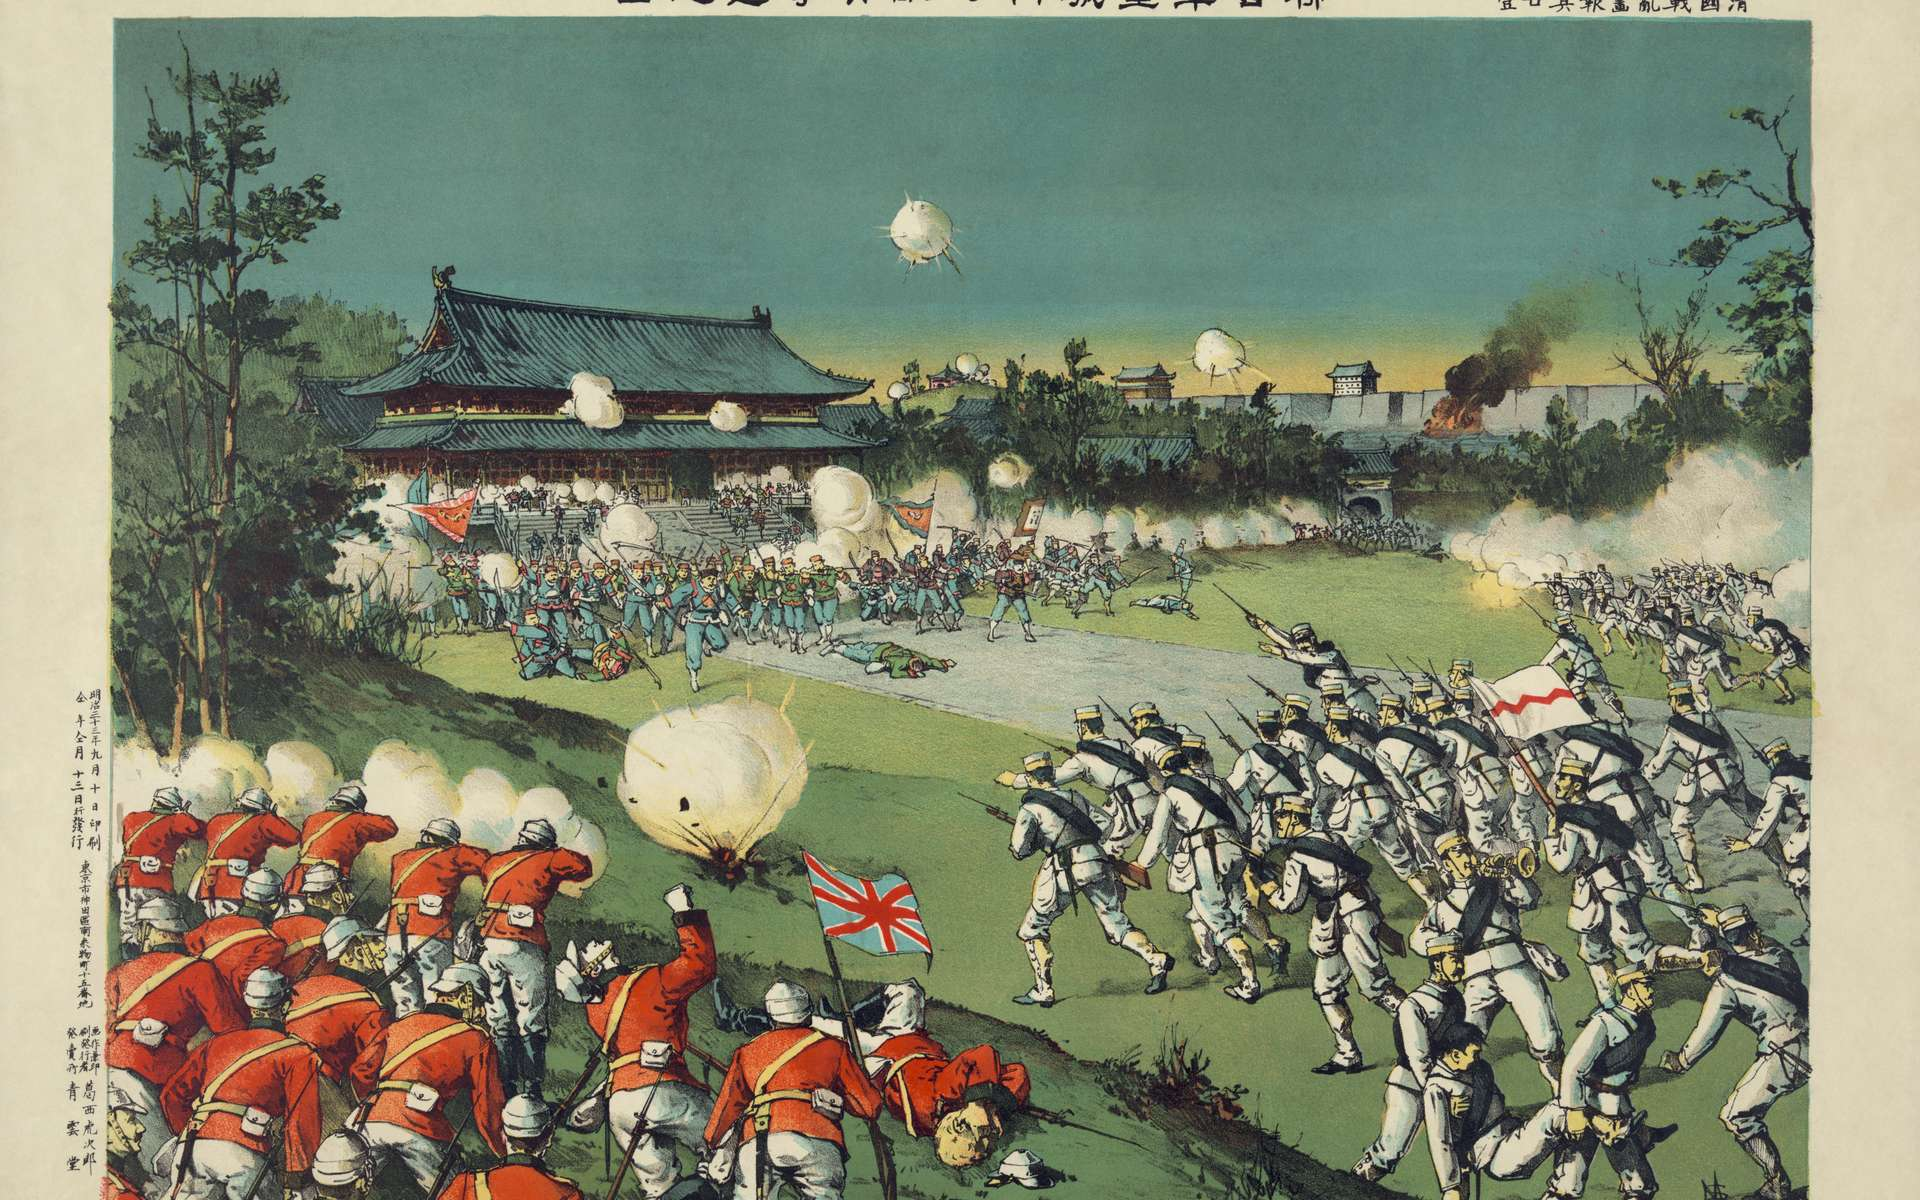 Beijing, 1900: why the Boxer uprising broke out?